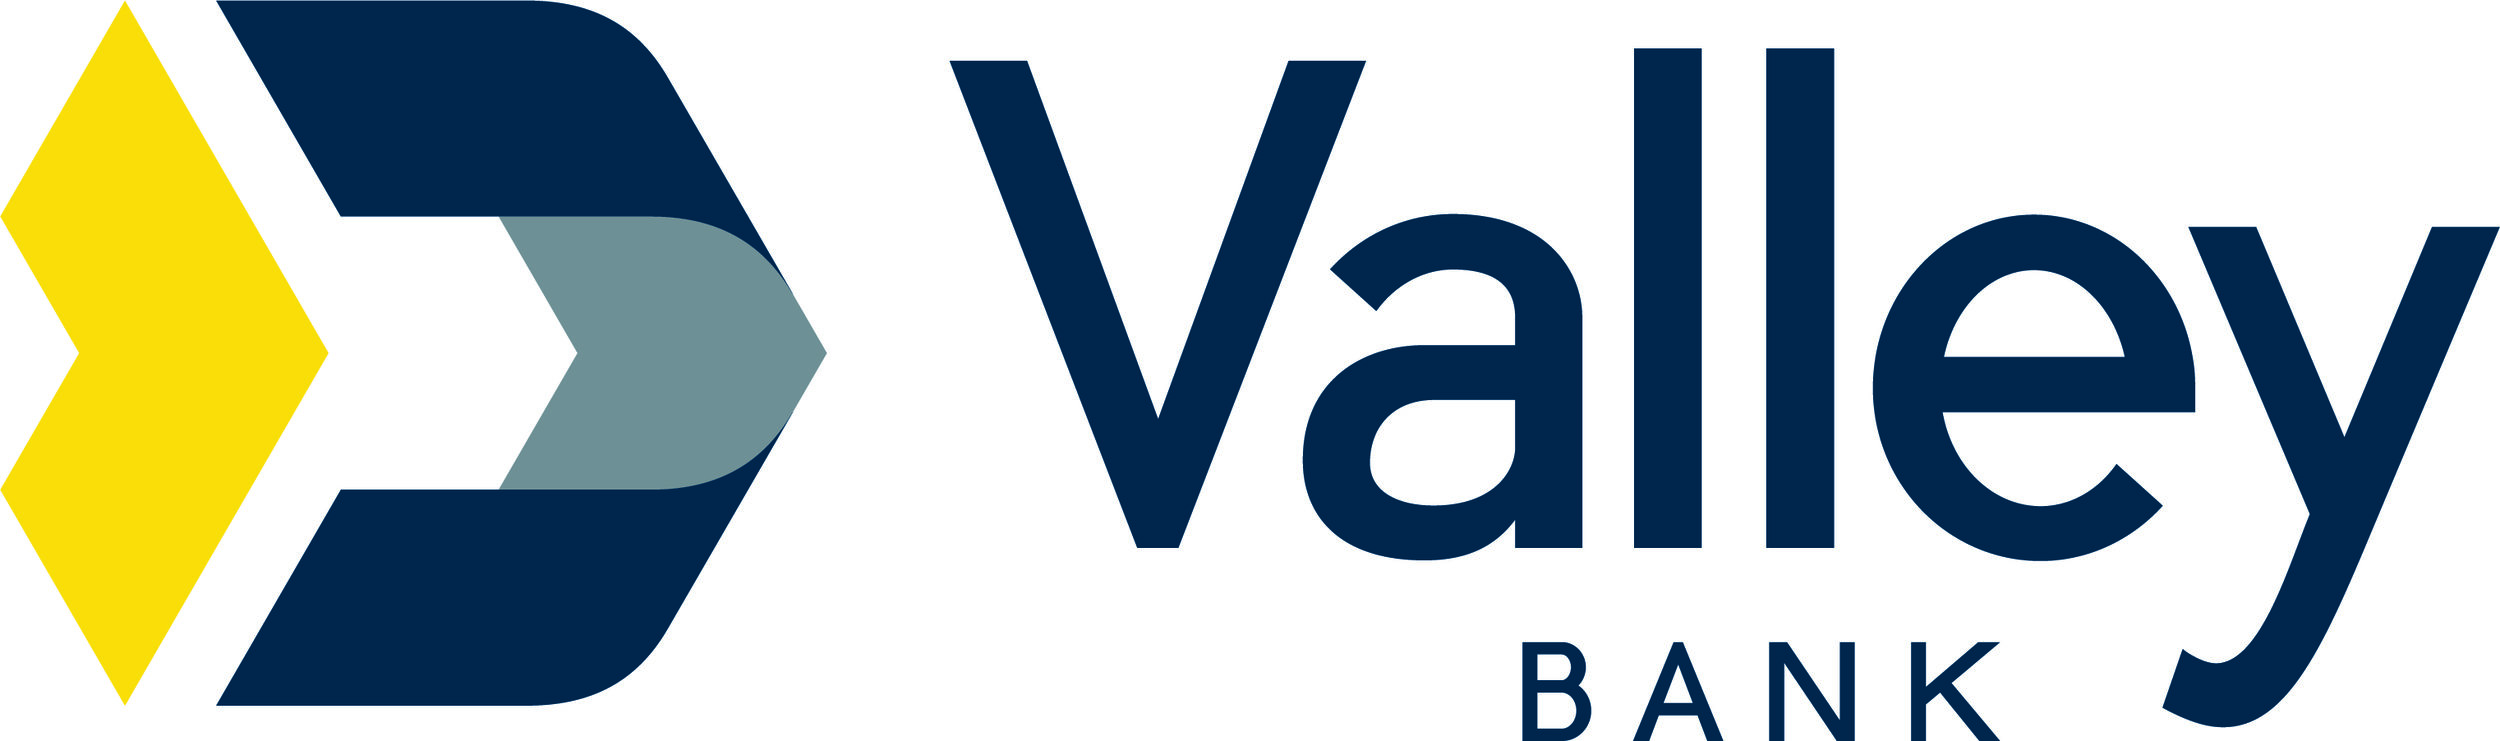 Valley-Logo-3C-H-Bank.jpg